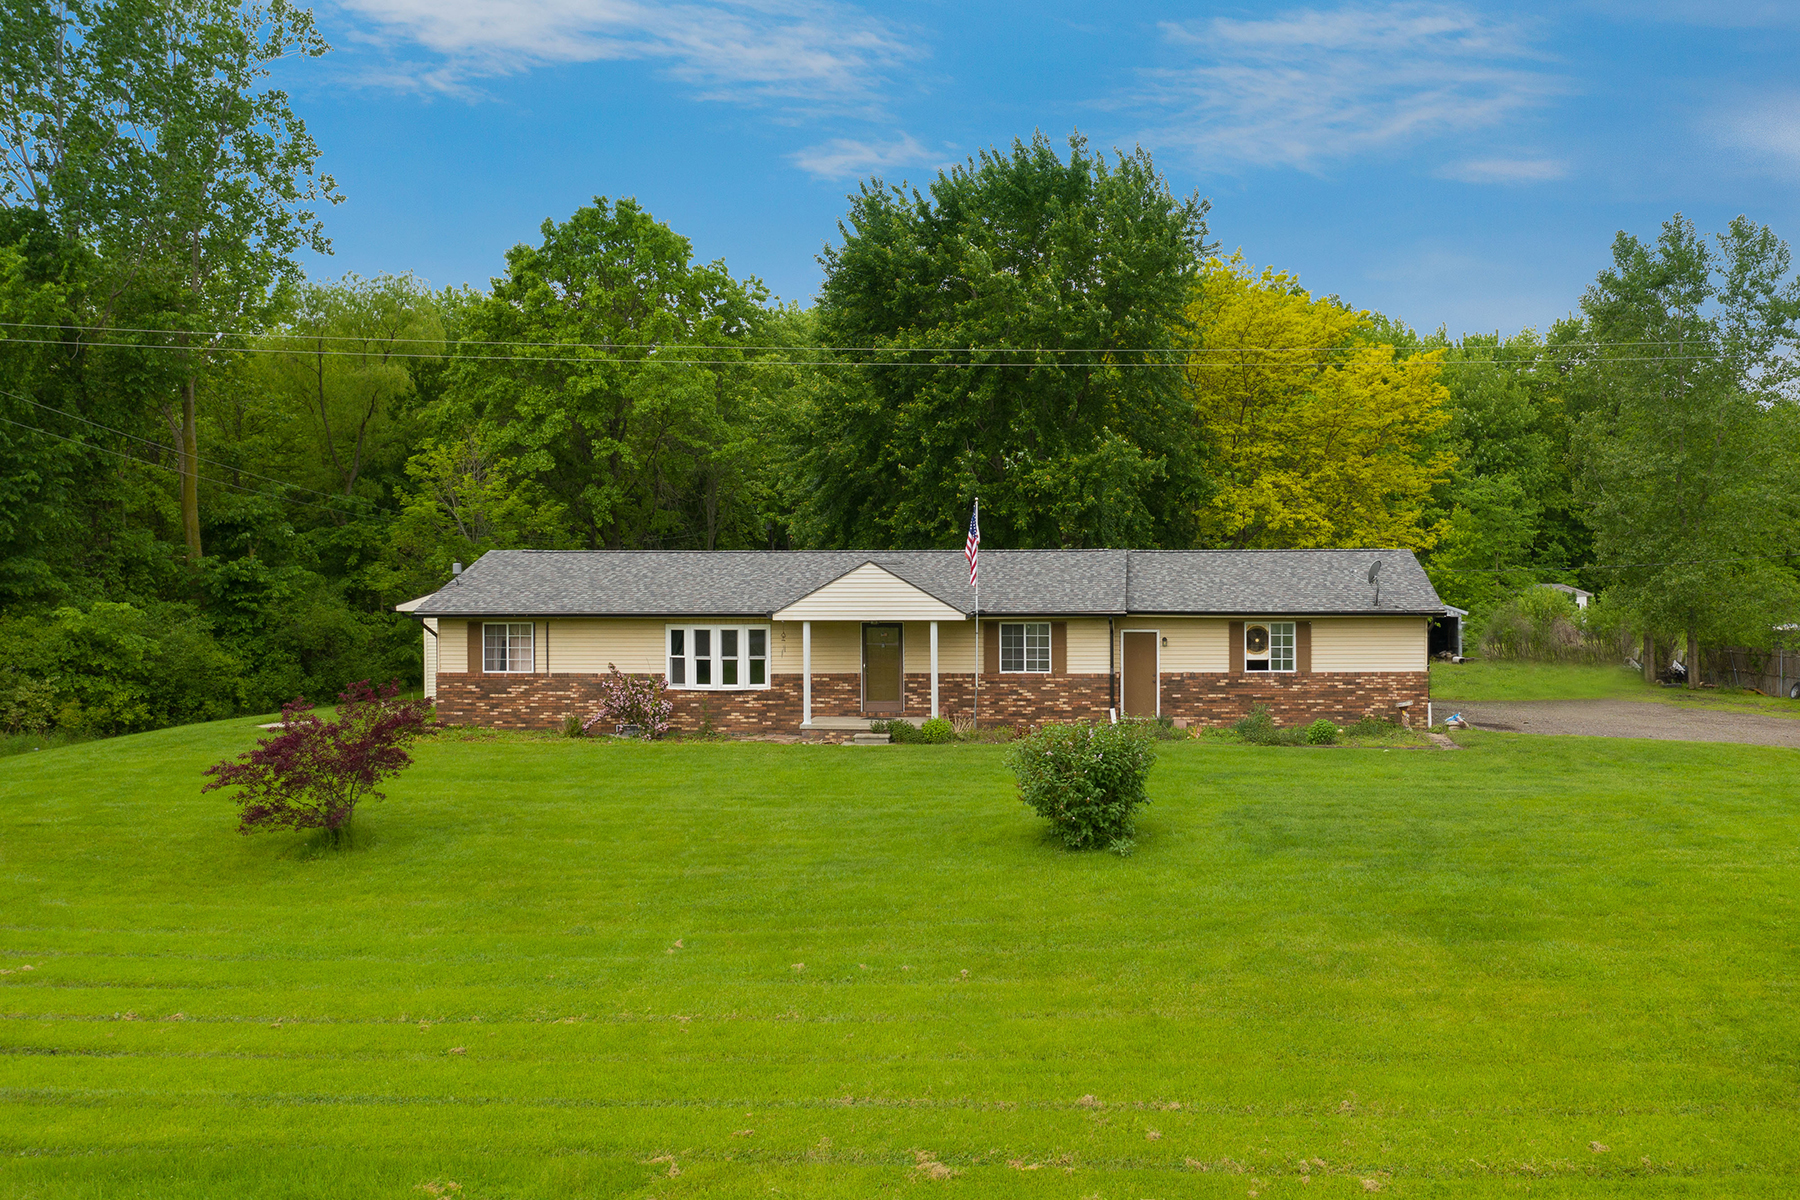 Single Family Homes for Active at Cottrellville Township 6630 Starville Road Cottrellville Township, Michigan 48039 United States